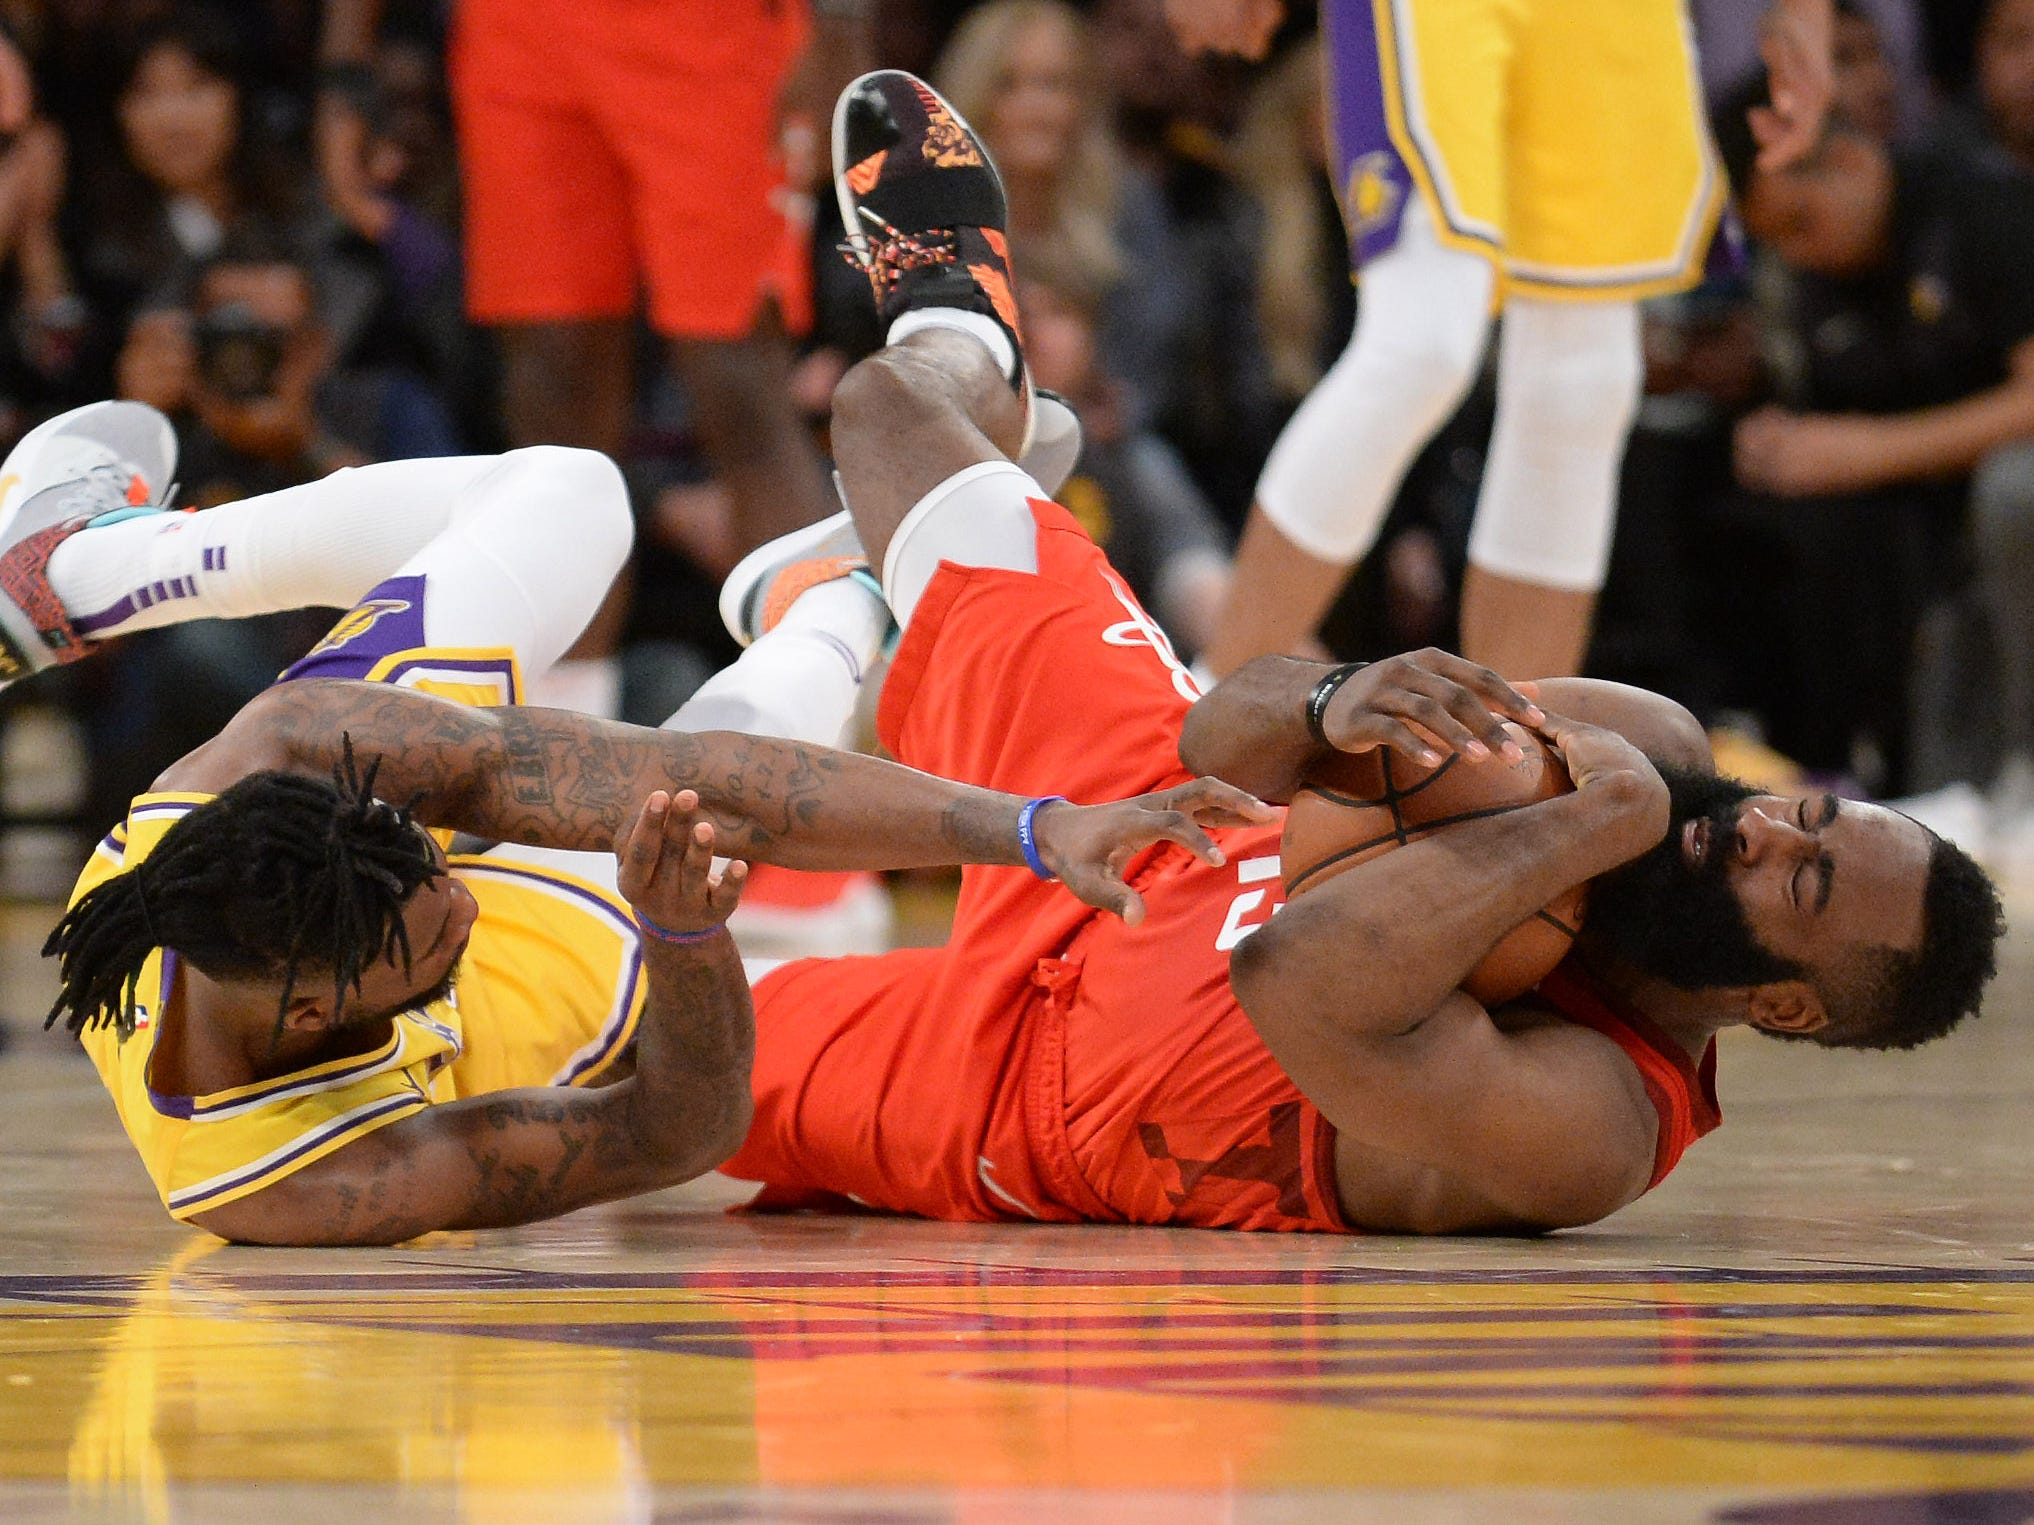 Feb. 21: Rockets guard James Harden (13) hits the deck to corral a loose ball against Lakers guard Reggie Bullock (35) during the second half in Los Angeles.